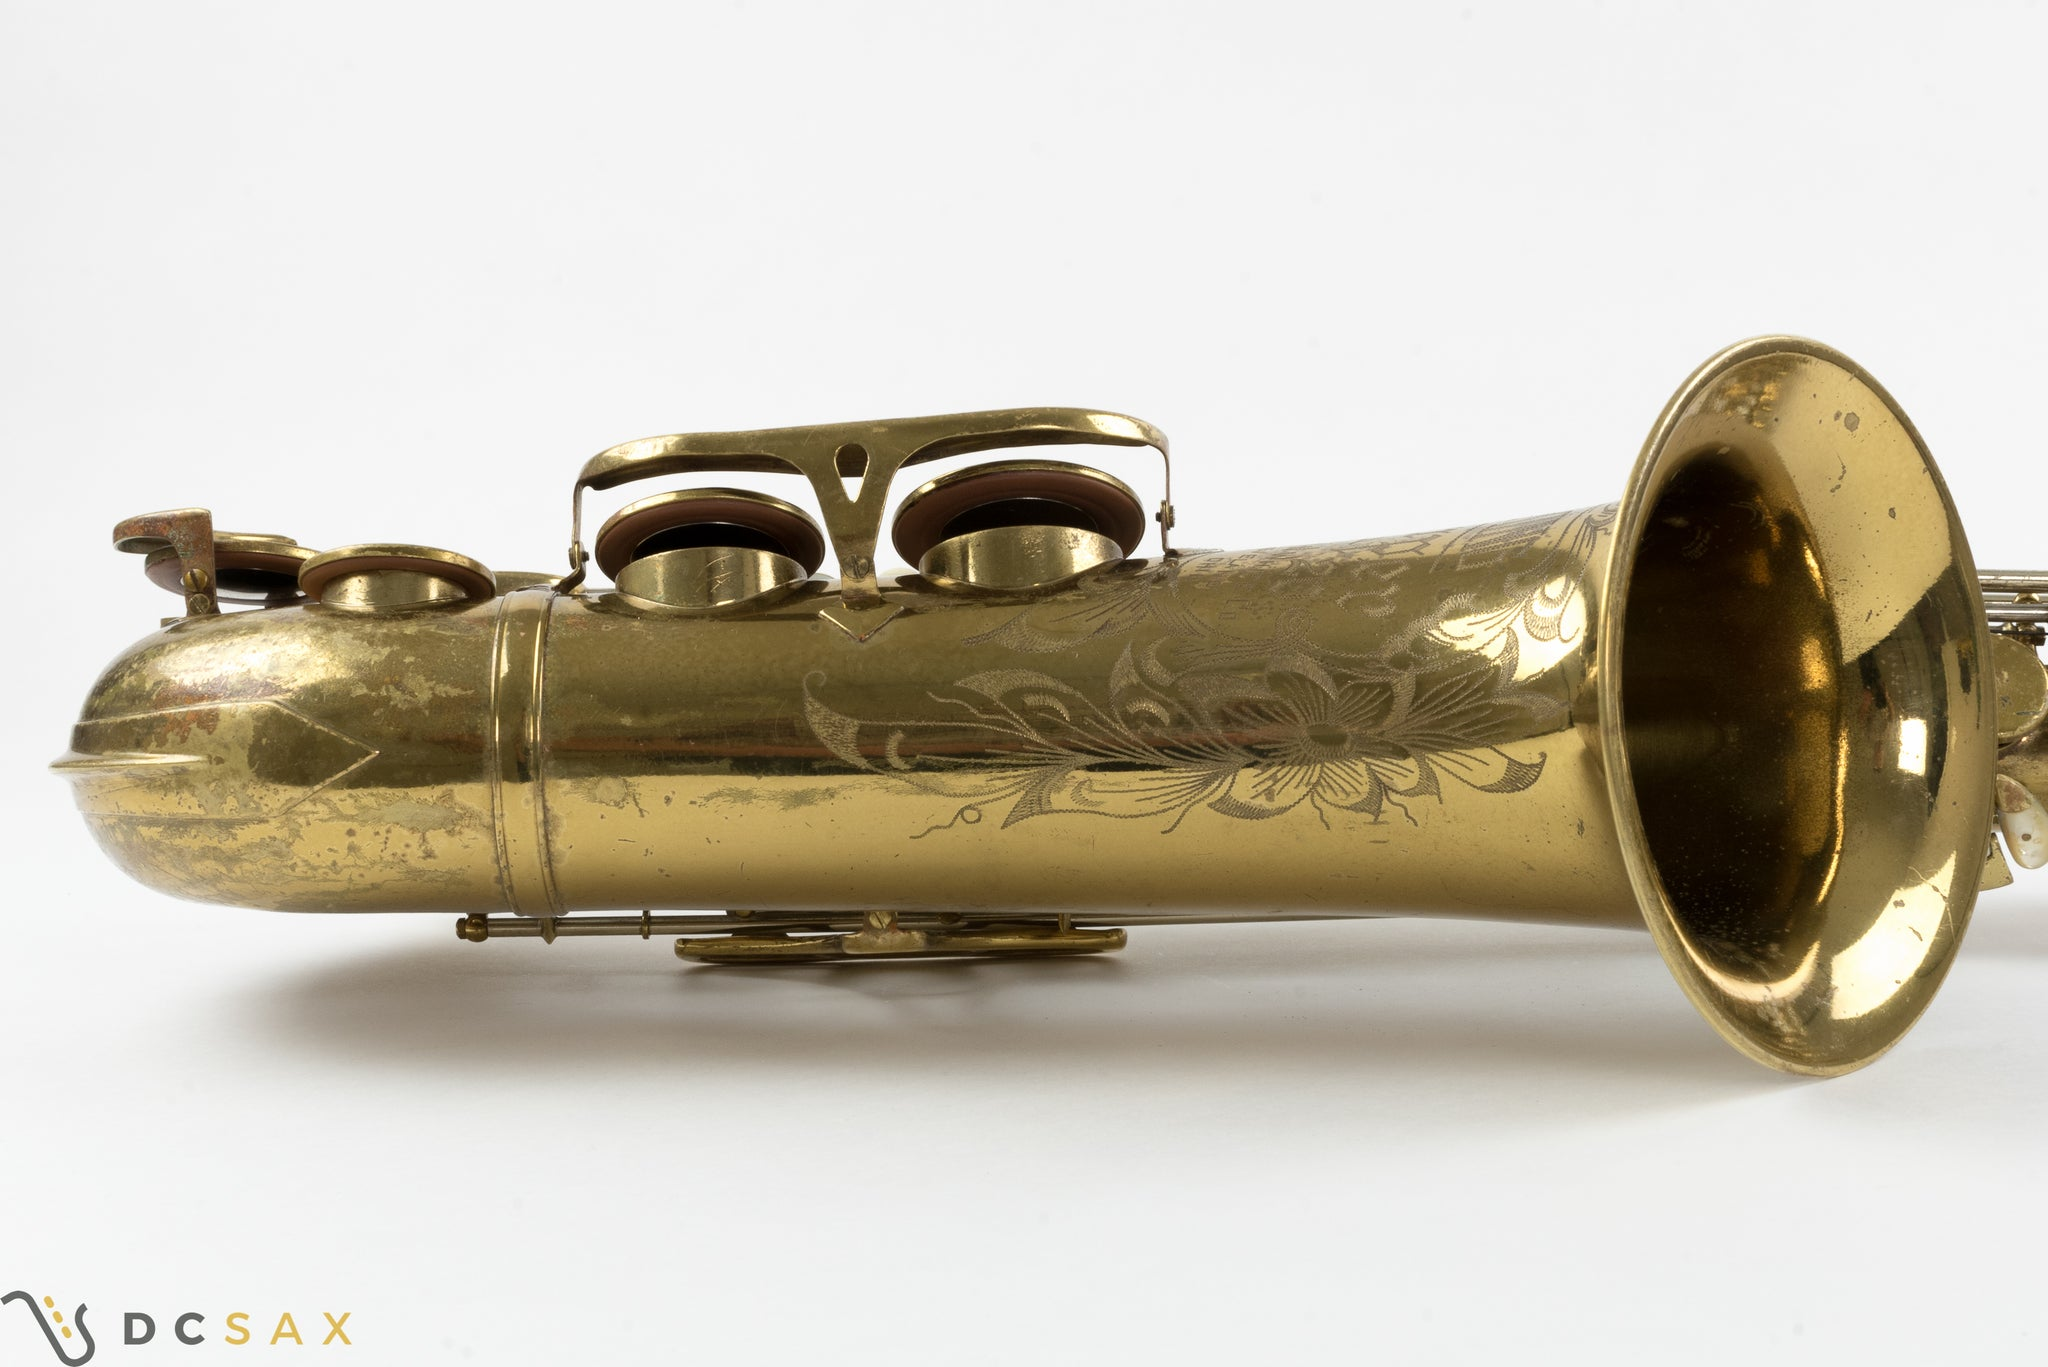 1948 298,xxx King Super 20 Tenor Saxophone, Full Pearls, Fresh Overhaul, Cleveland Era